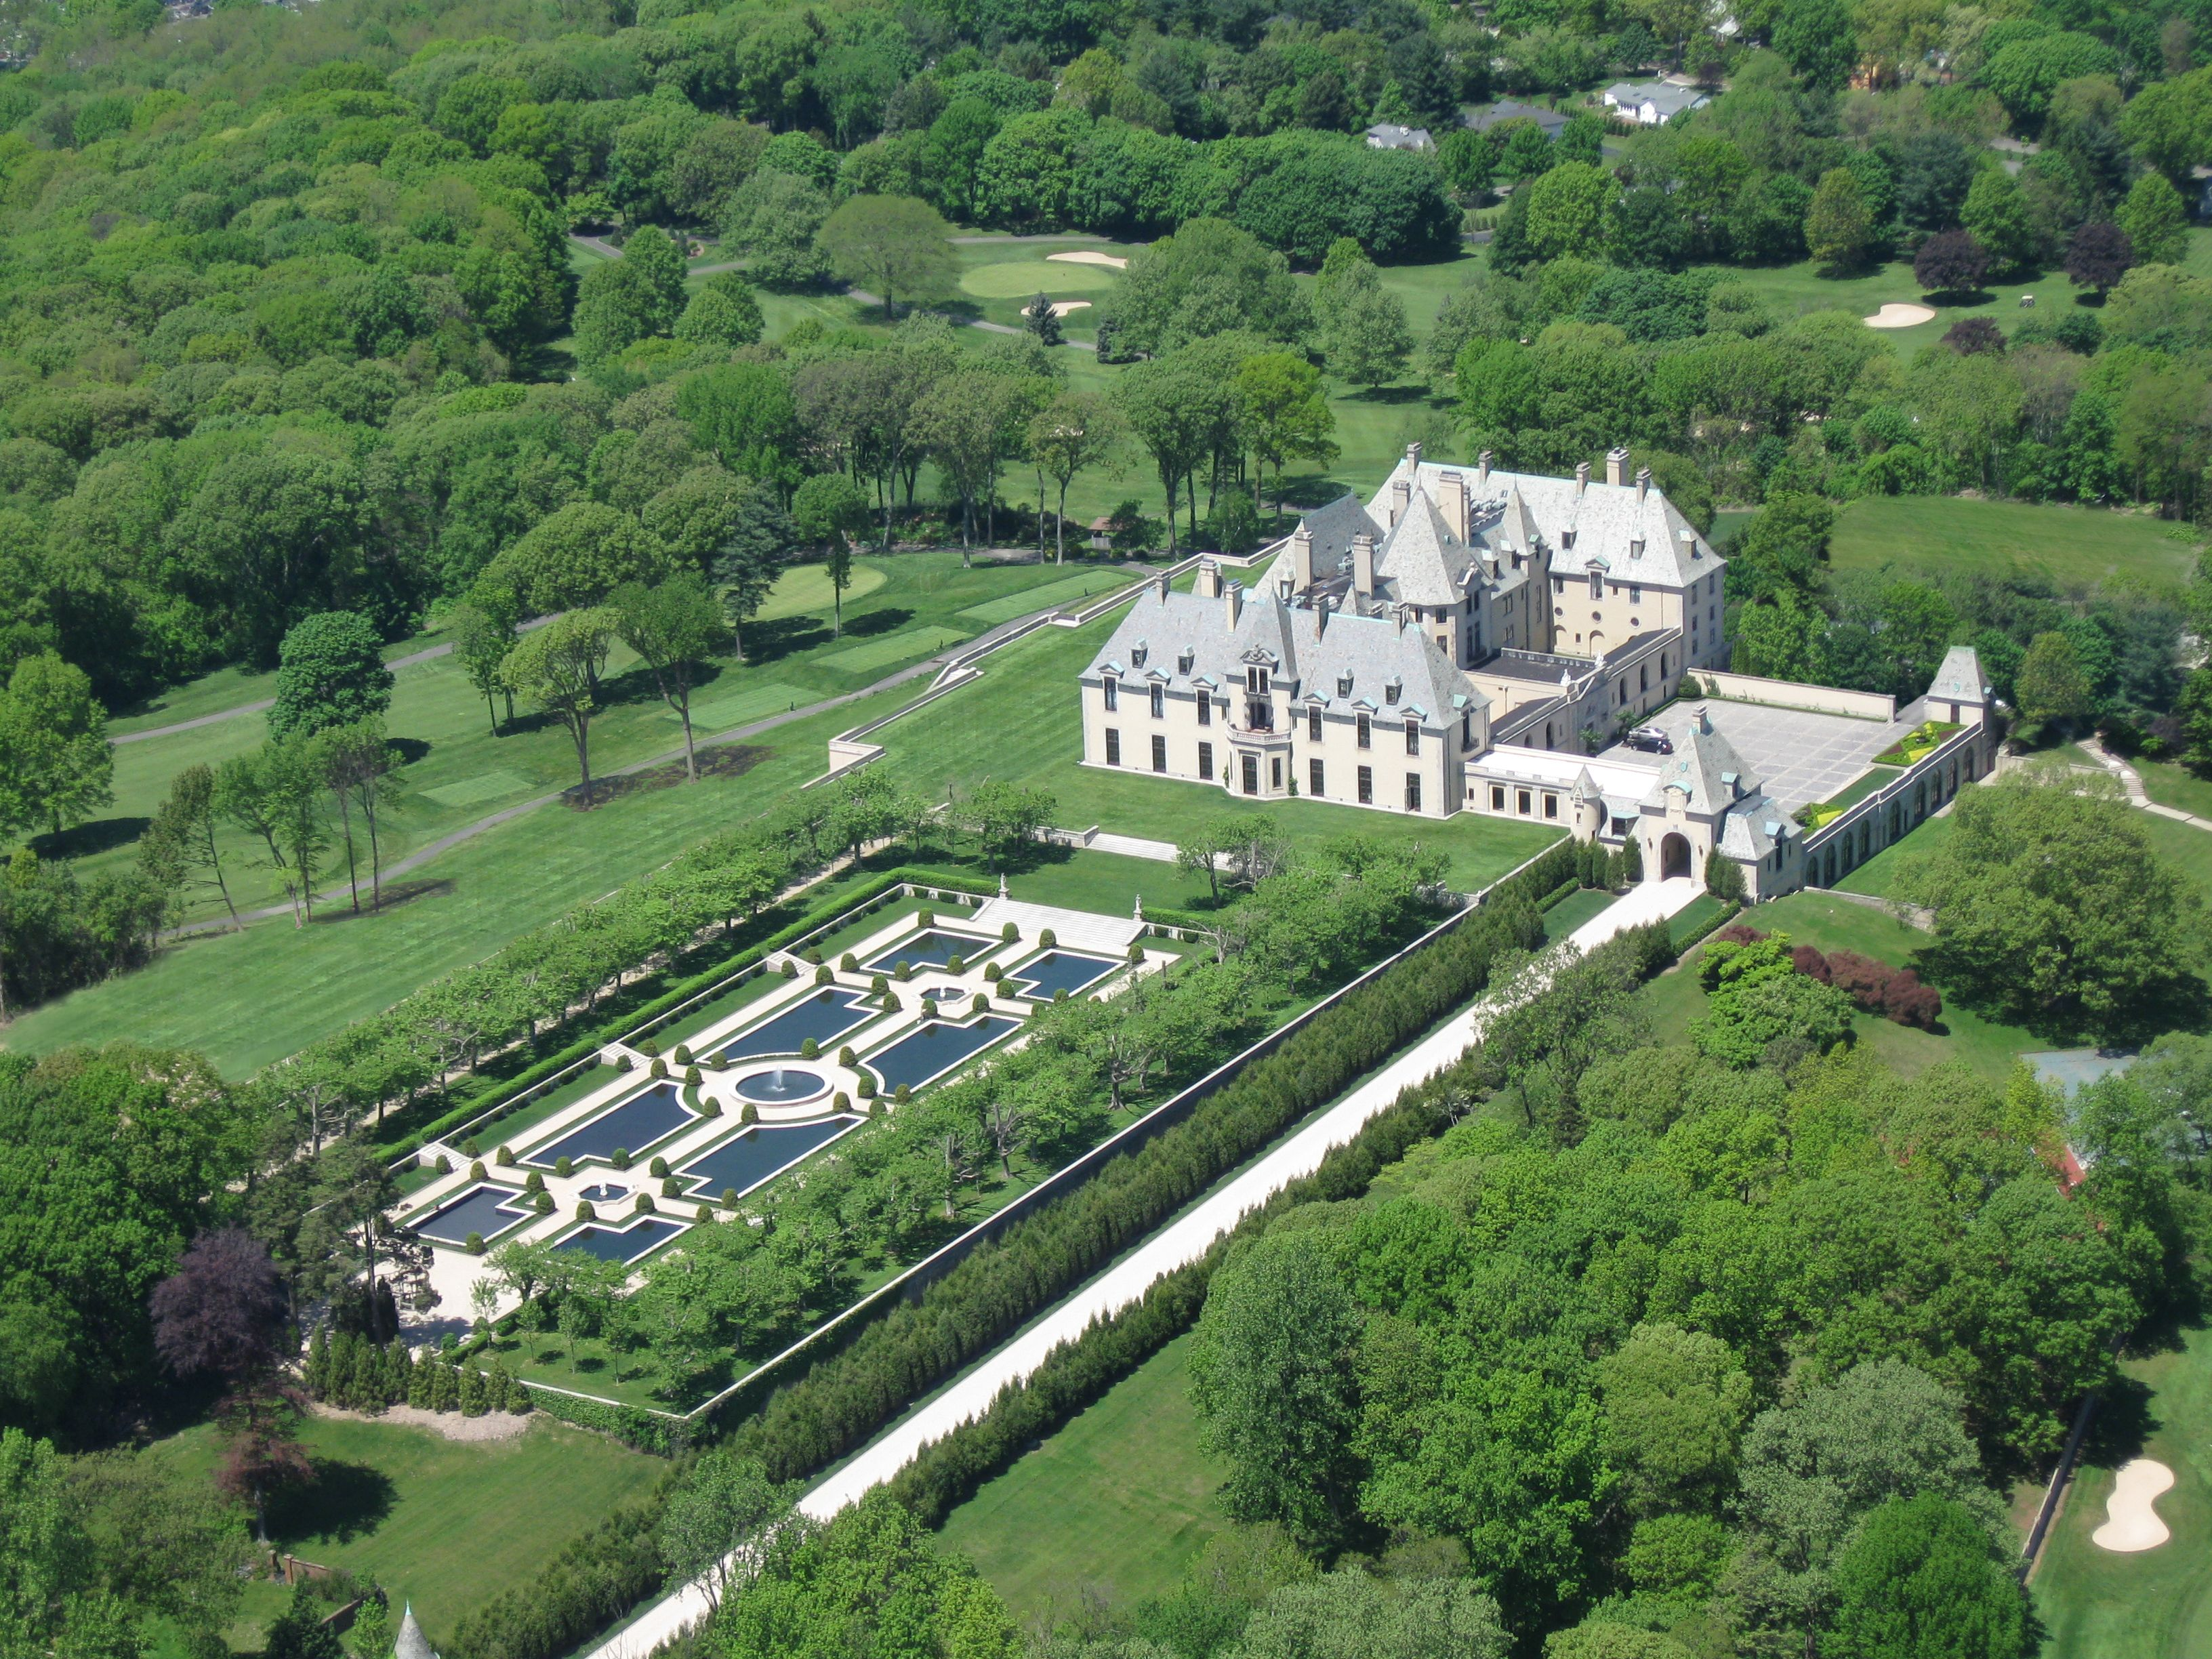 While There Have Been Some RealEstate Downturns The Hamptons LuxuryRealEstate Never Stops